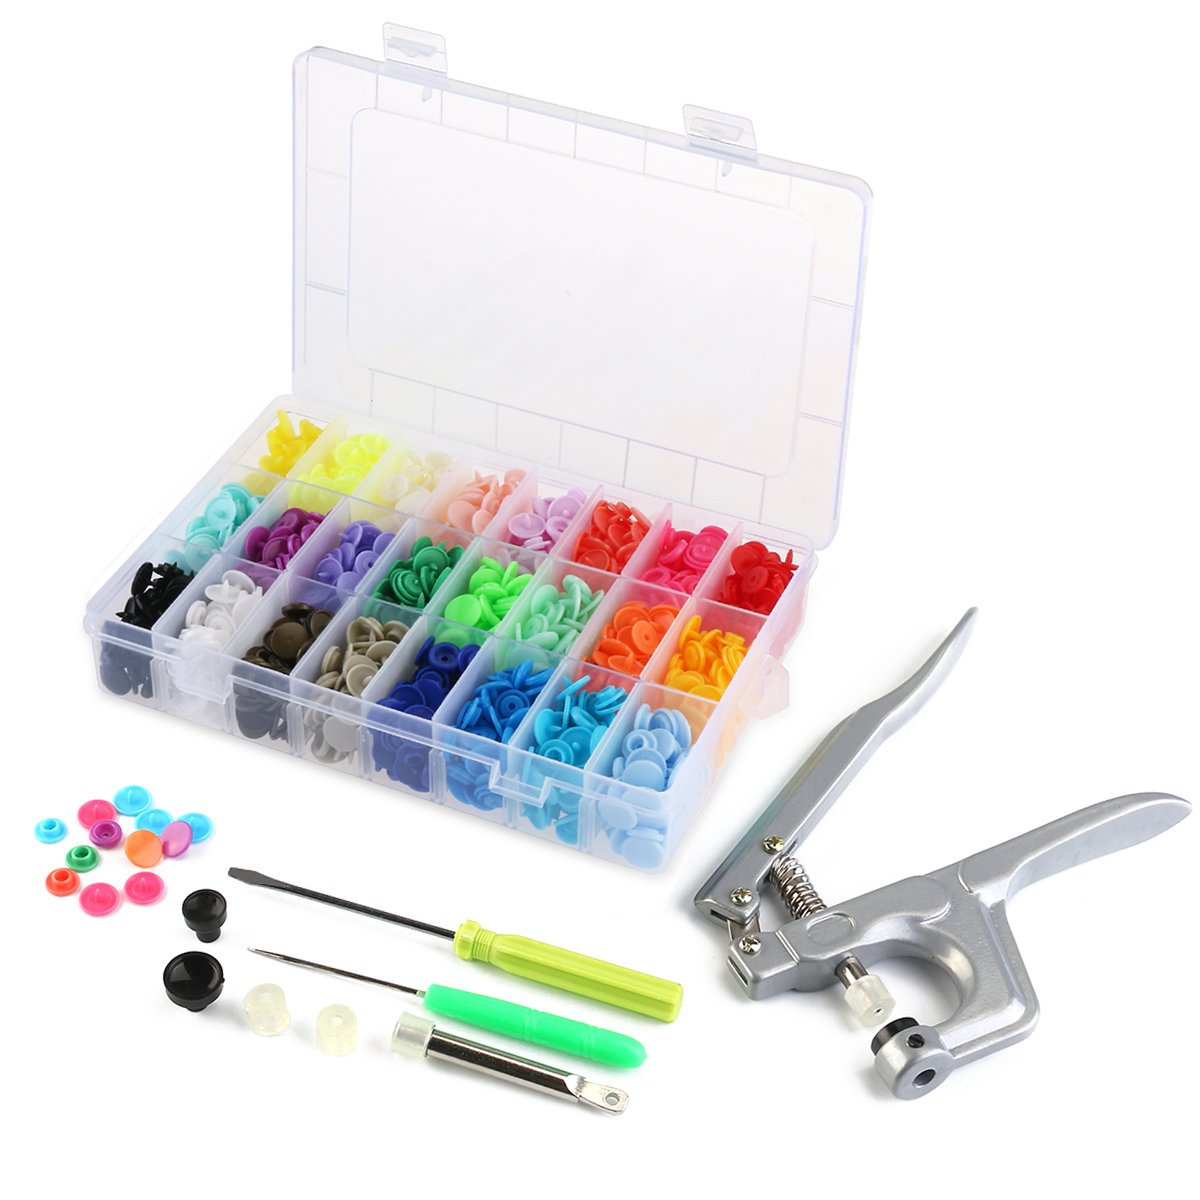 OUNONA 360pcs T5 Snap Button Plastic with Snaps Pliers and Organizer Storage Containers by OUNONA